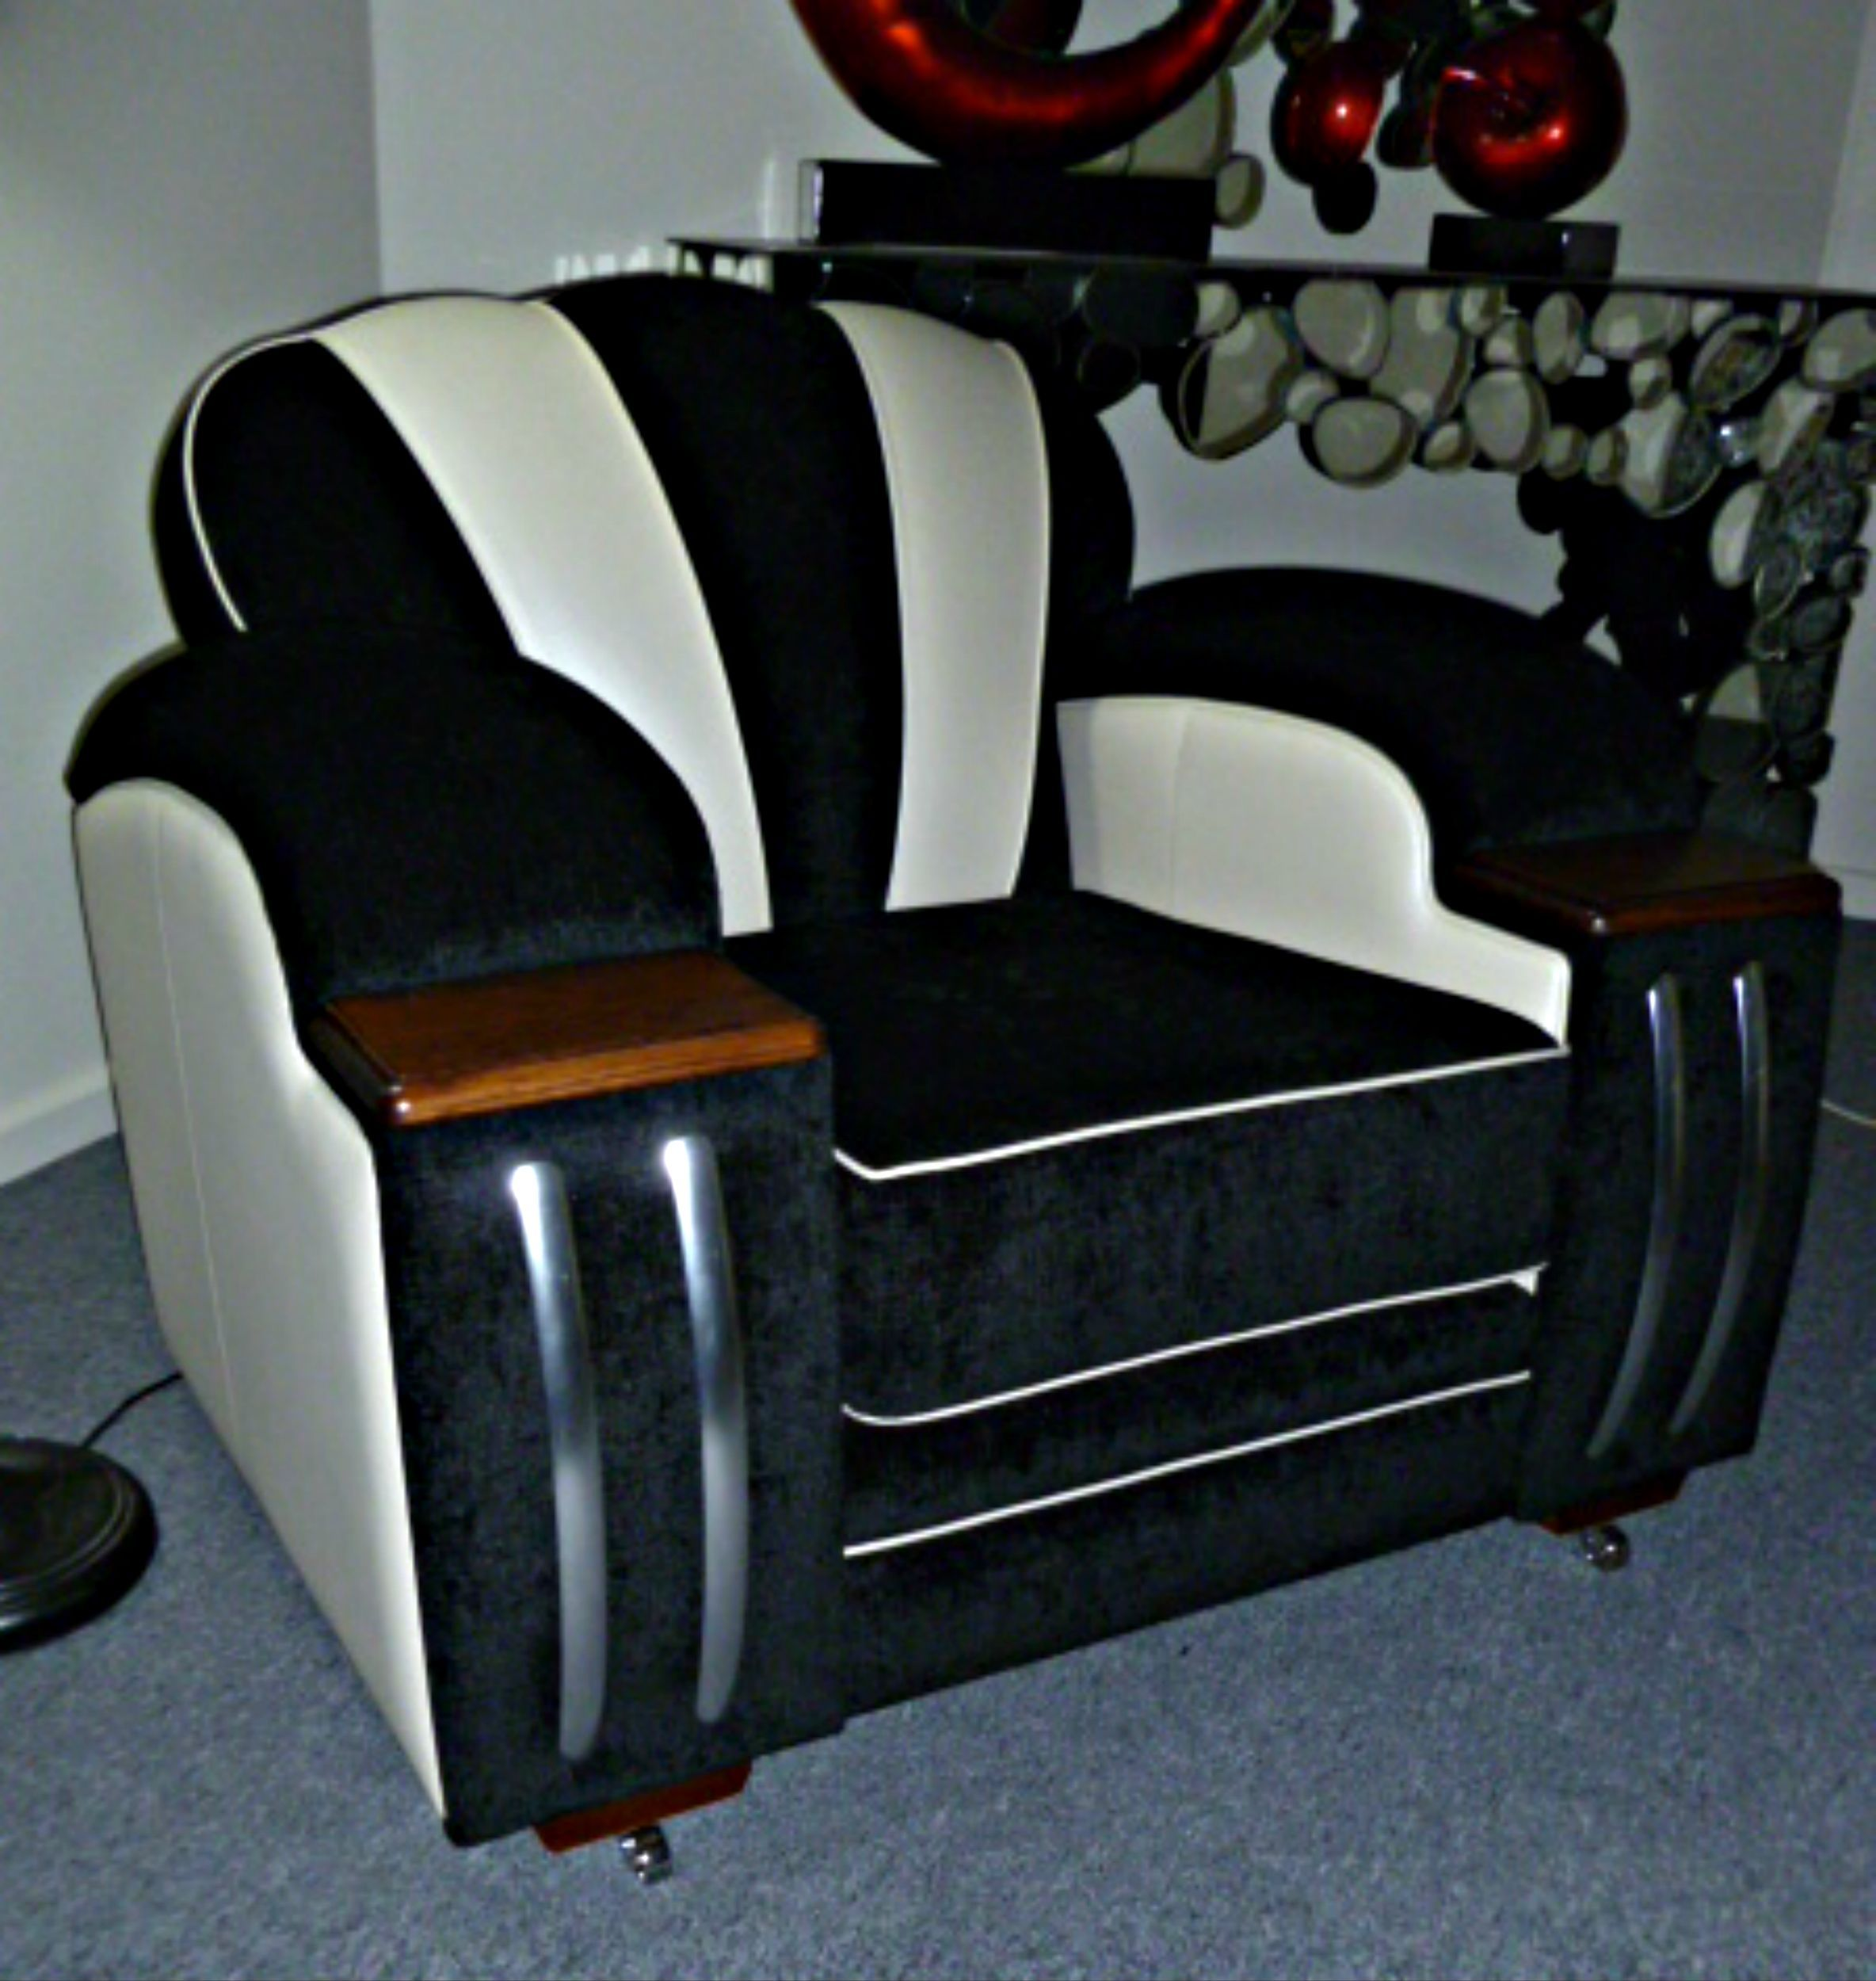 Deco, Retro, And Club Lounge Suite Made To Order Factory Direct Australian Made FACTORY SHOWROOM 100 Gaffney Street Coburg Melbourne phone 03 93501699 open 7 days 10 till 5 www.decofurniture... www.facebook.com/....